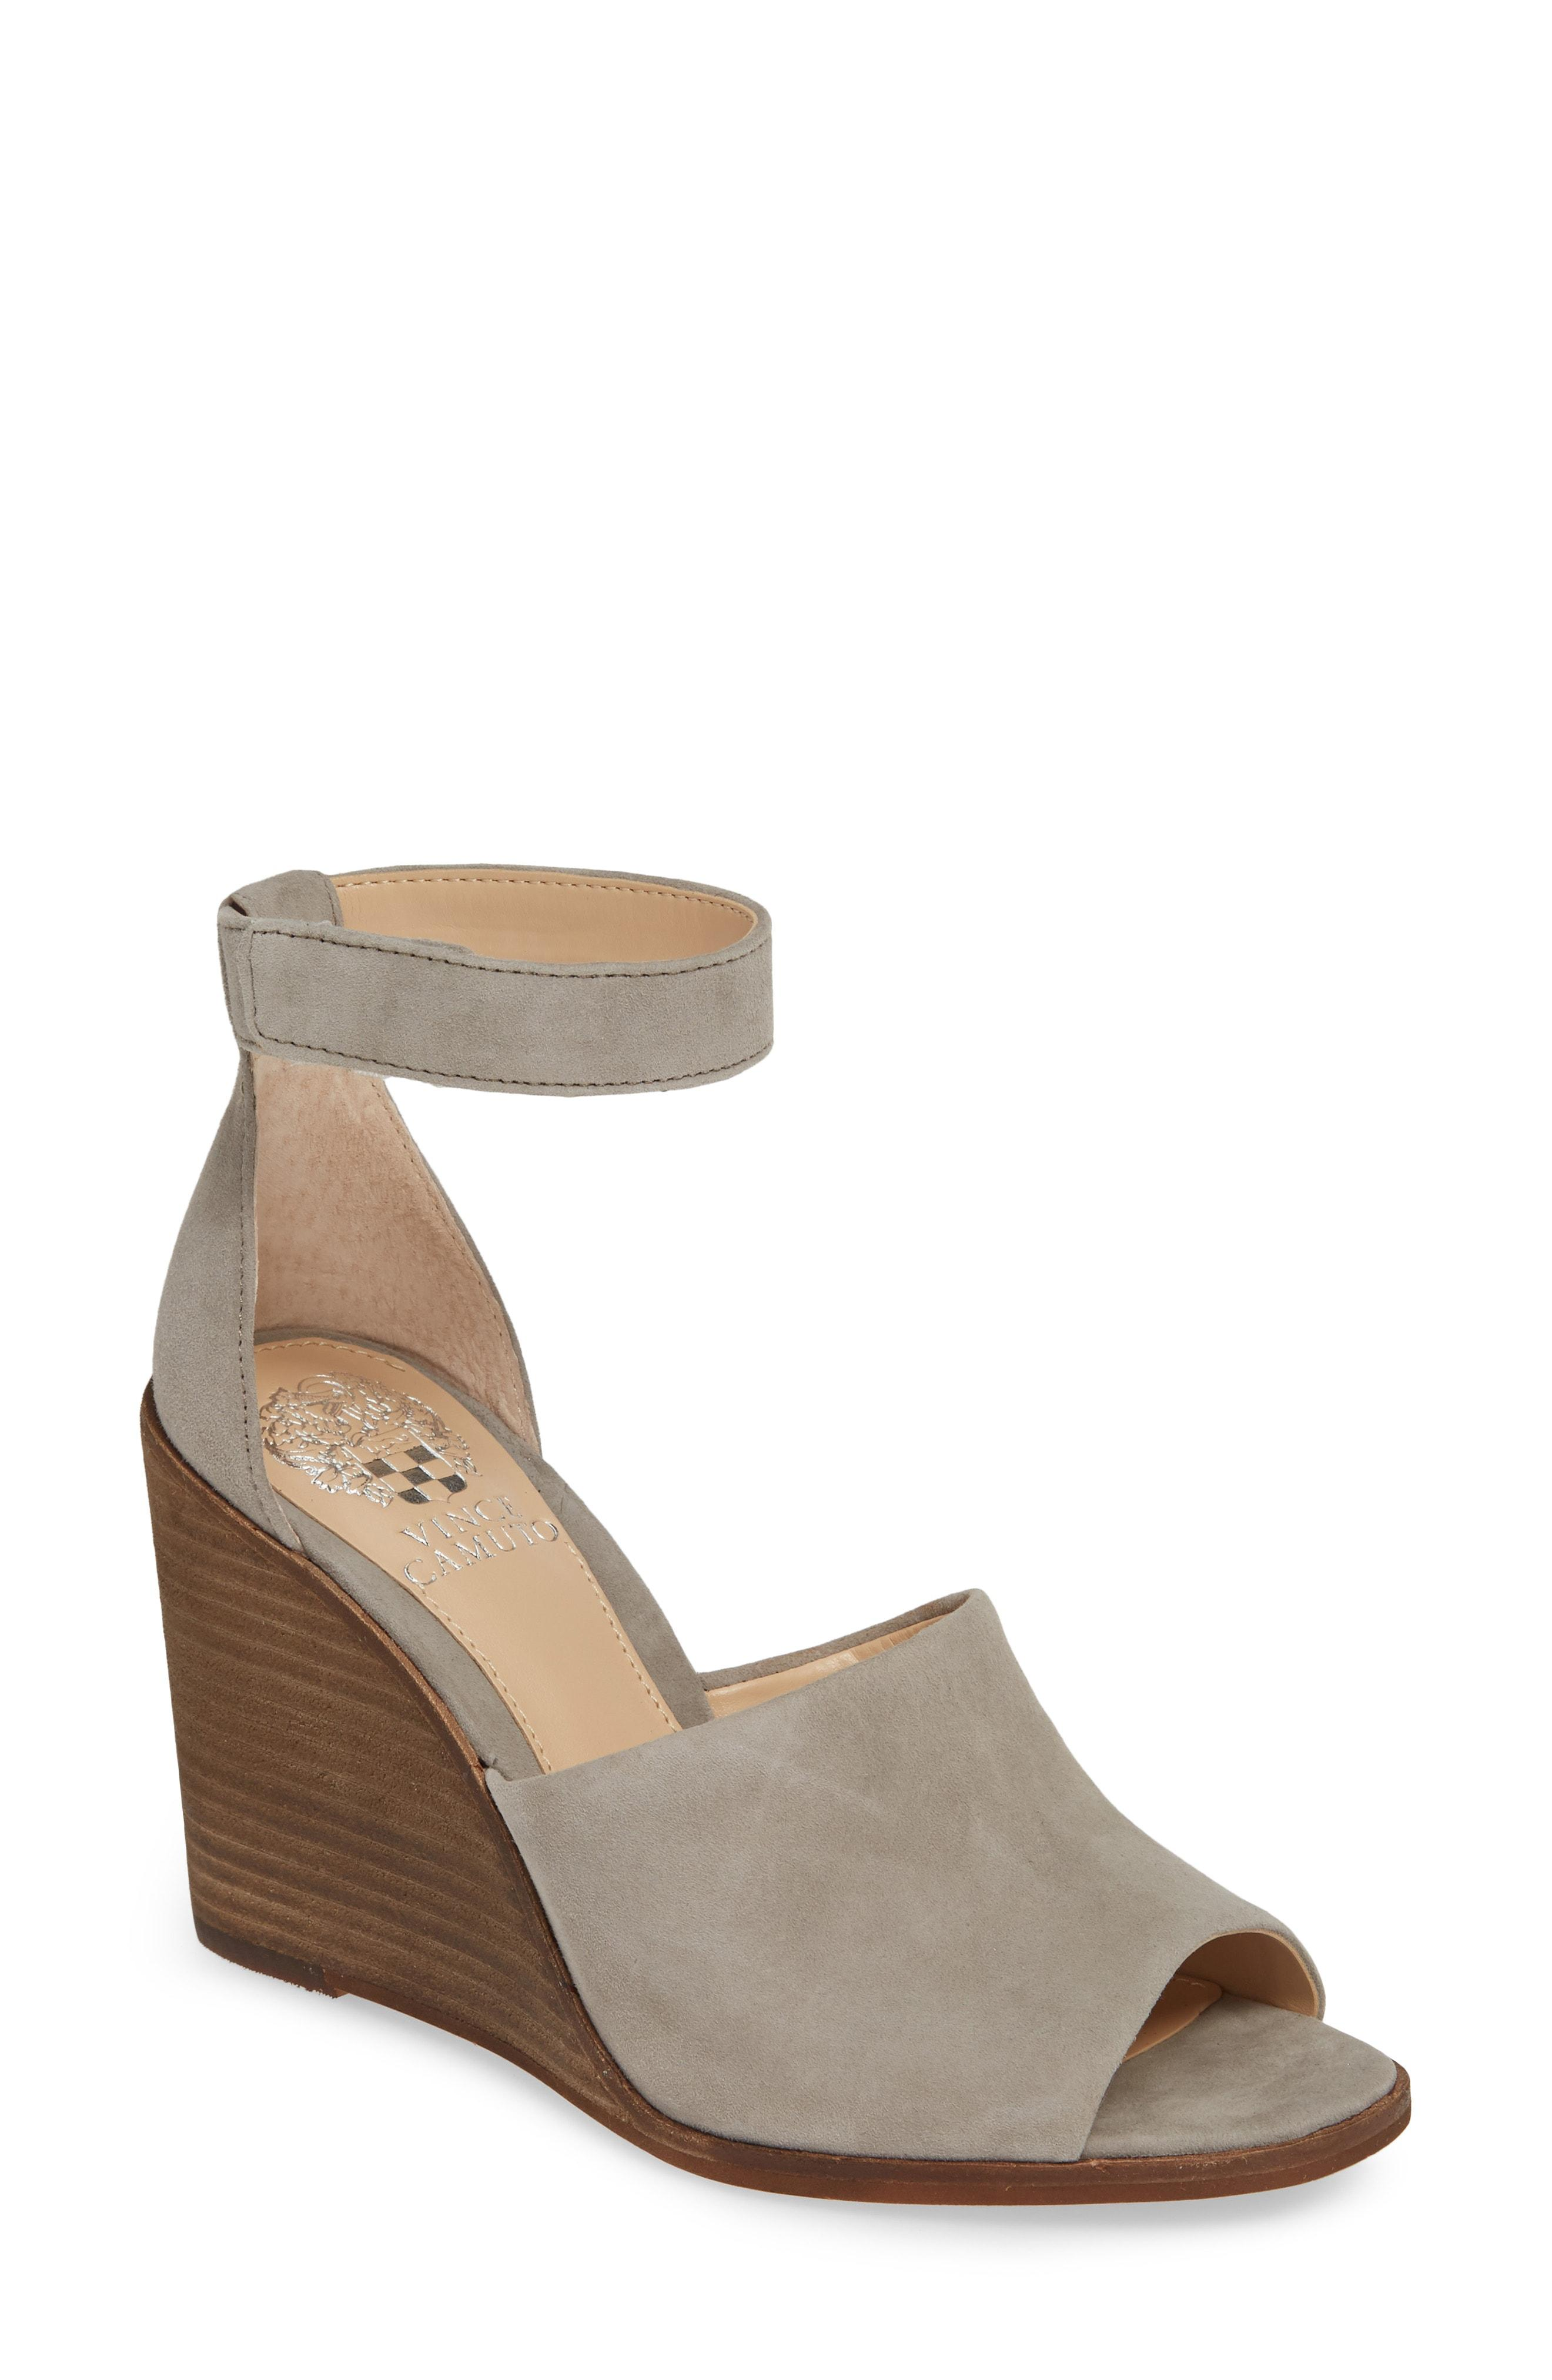 06e8d103f5a Lyst - Vince Camuto Deedriana Wedge Sandal in Gray